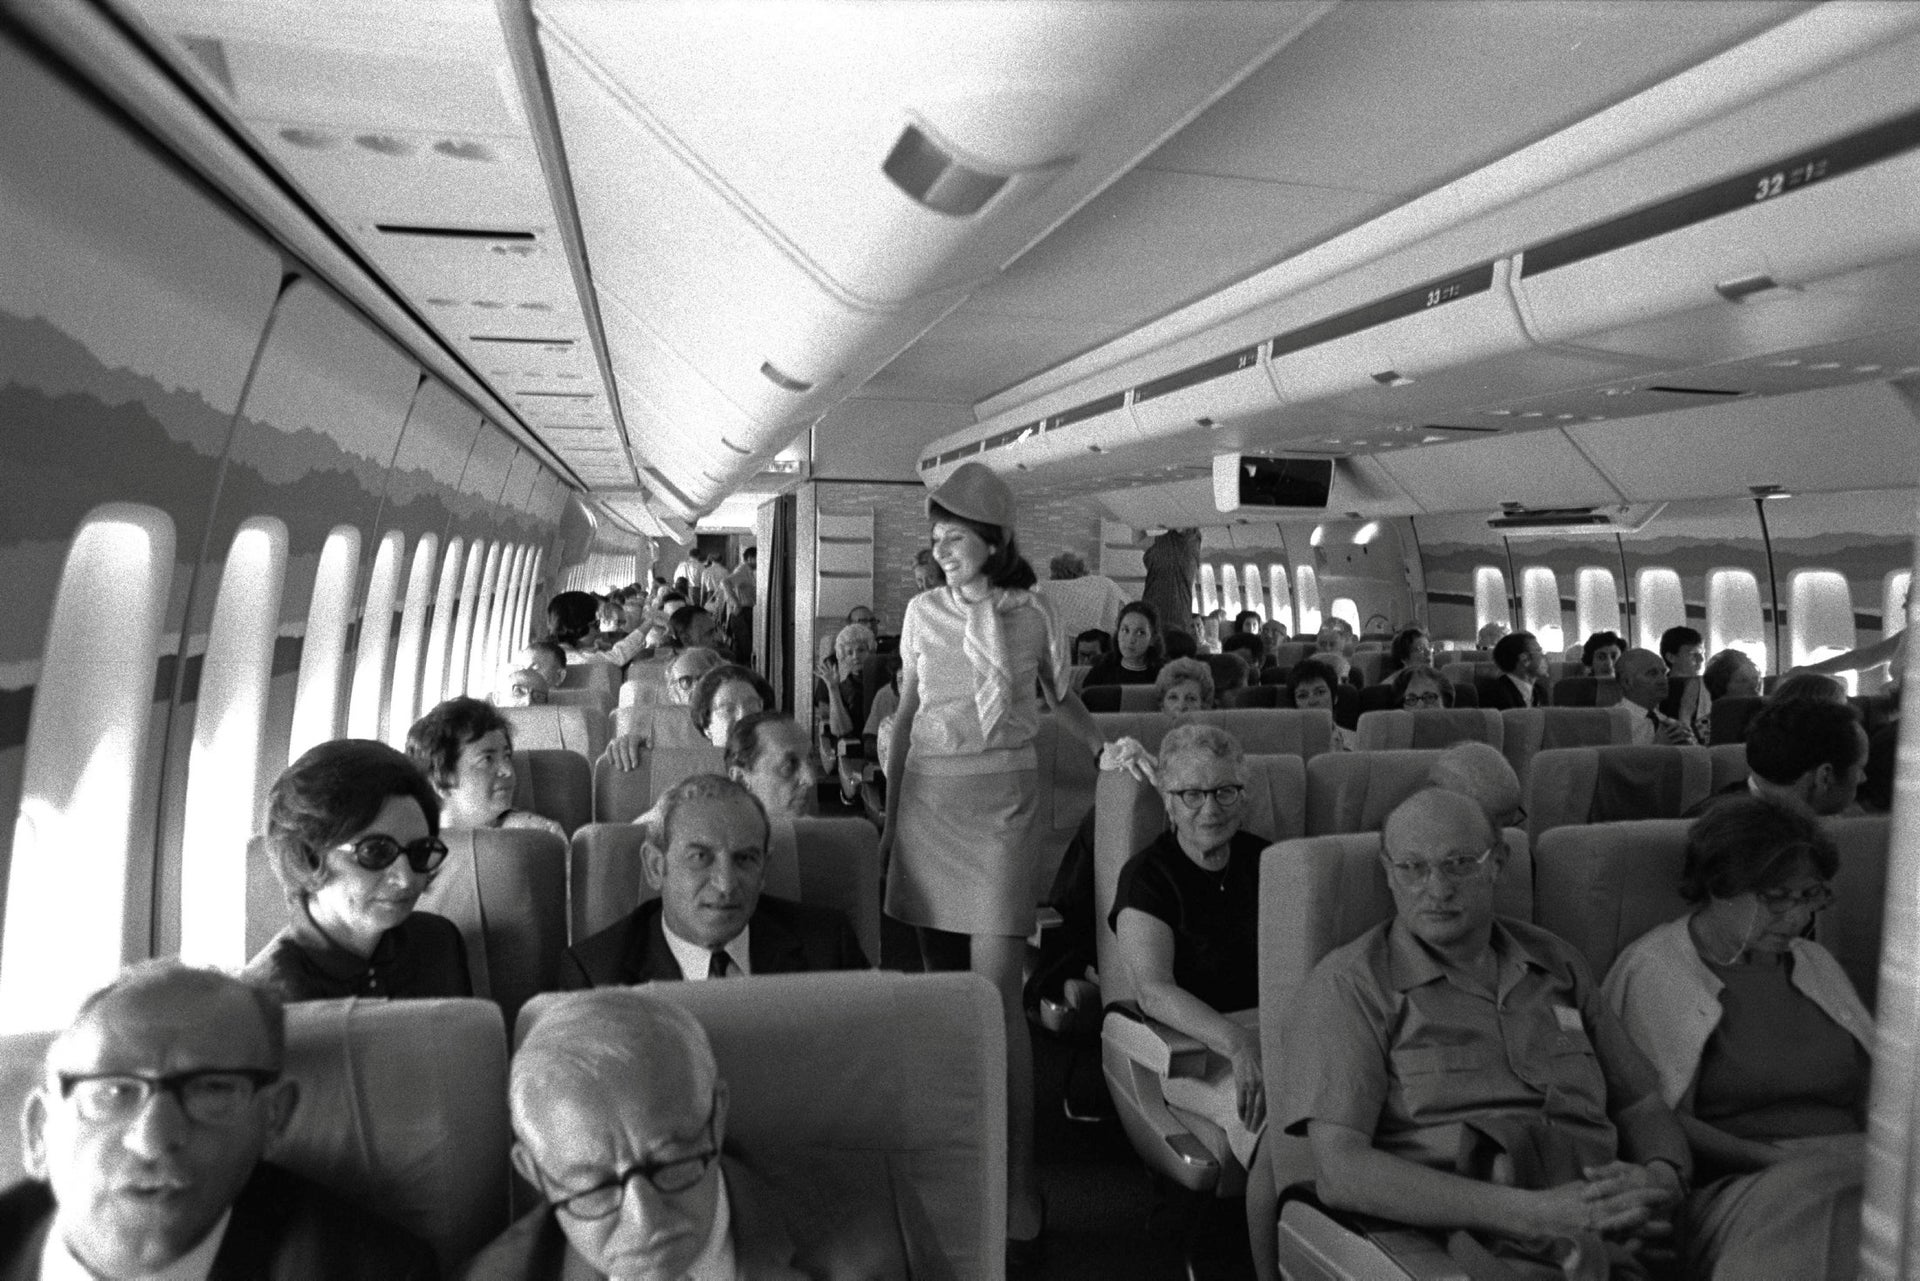 Passengers onboard El Al's 747 aircraft before the first commercial flight to New York, July 1971.